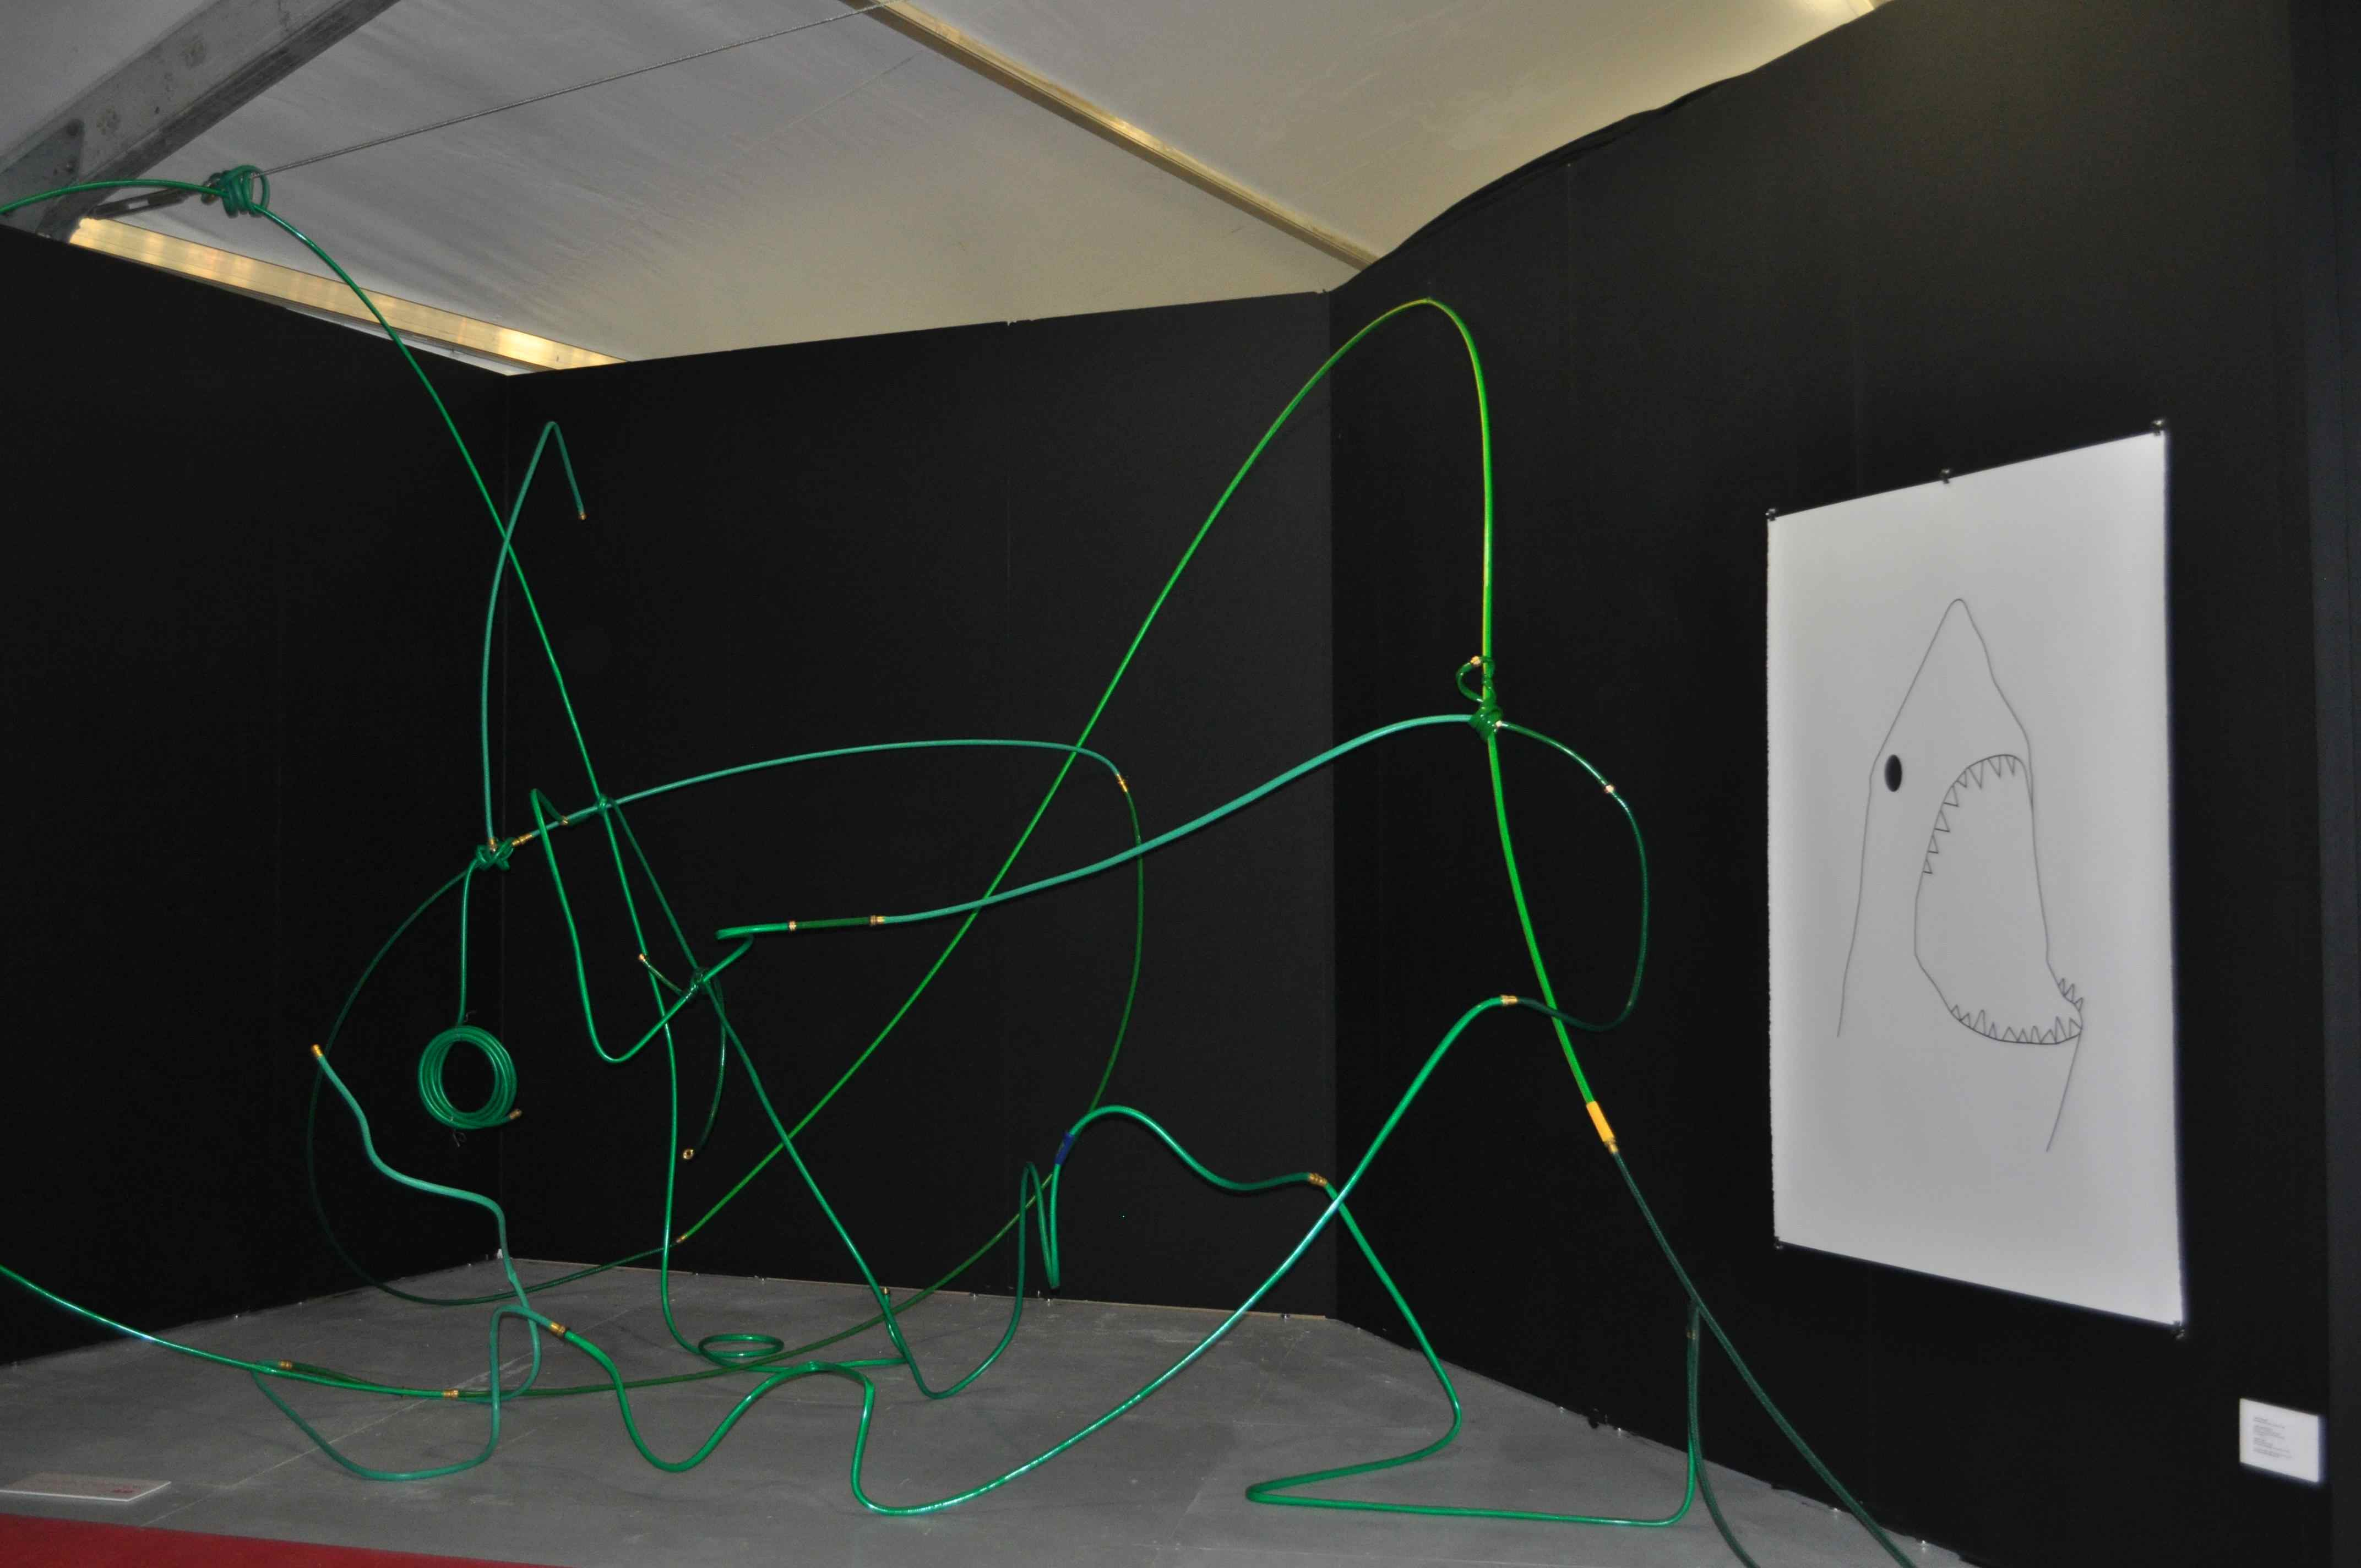 Justin Cooper's Hose Lits in the entryway of Untitled Art Fair